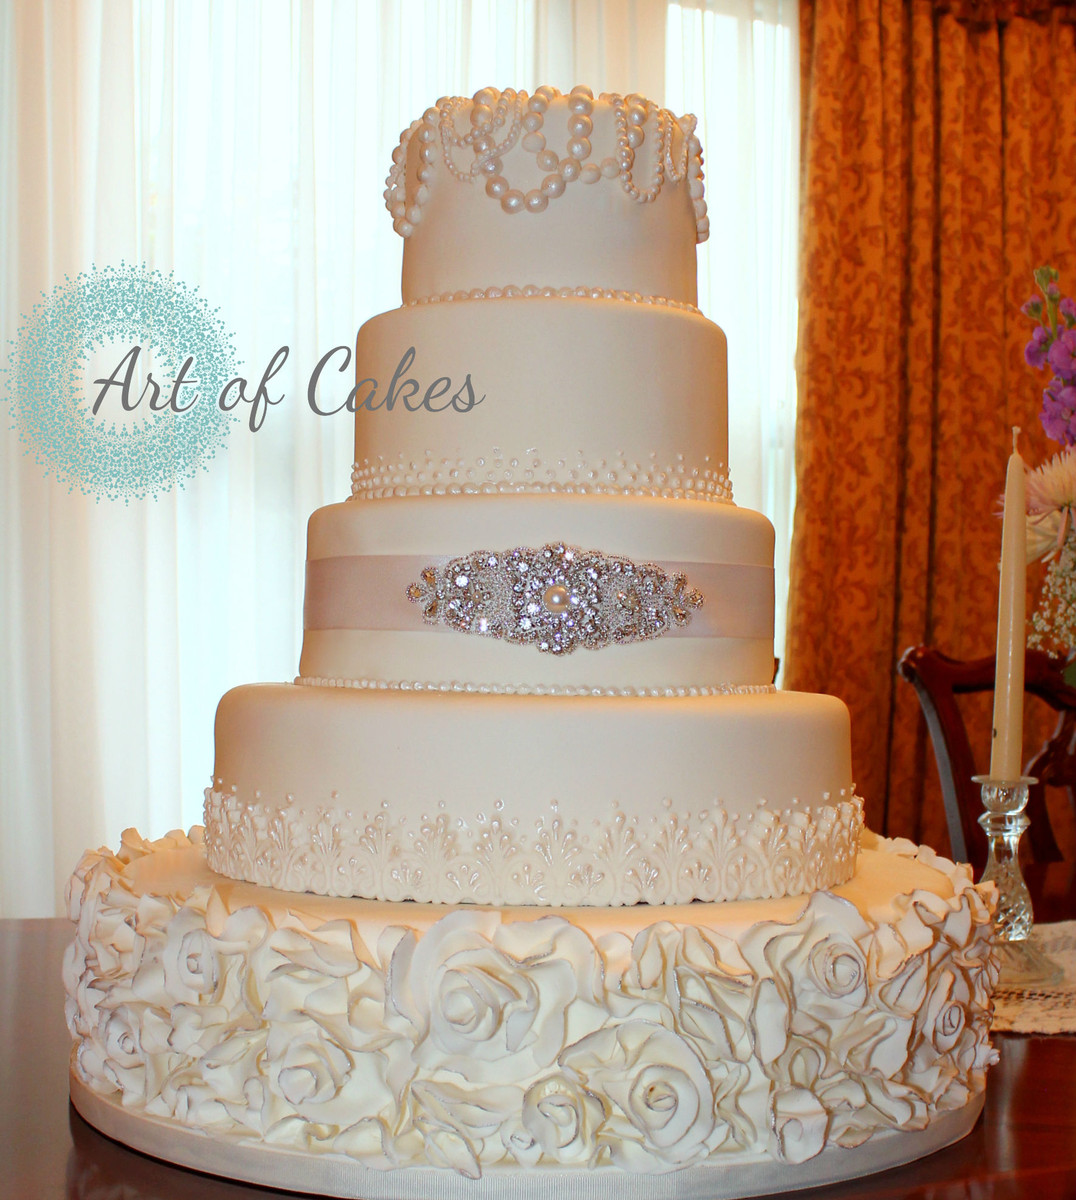 Art of Cakes Photos, Wedding Cake Pictures, Tennessee ...